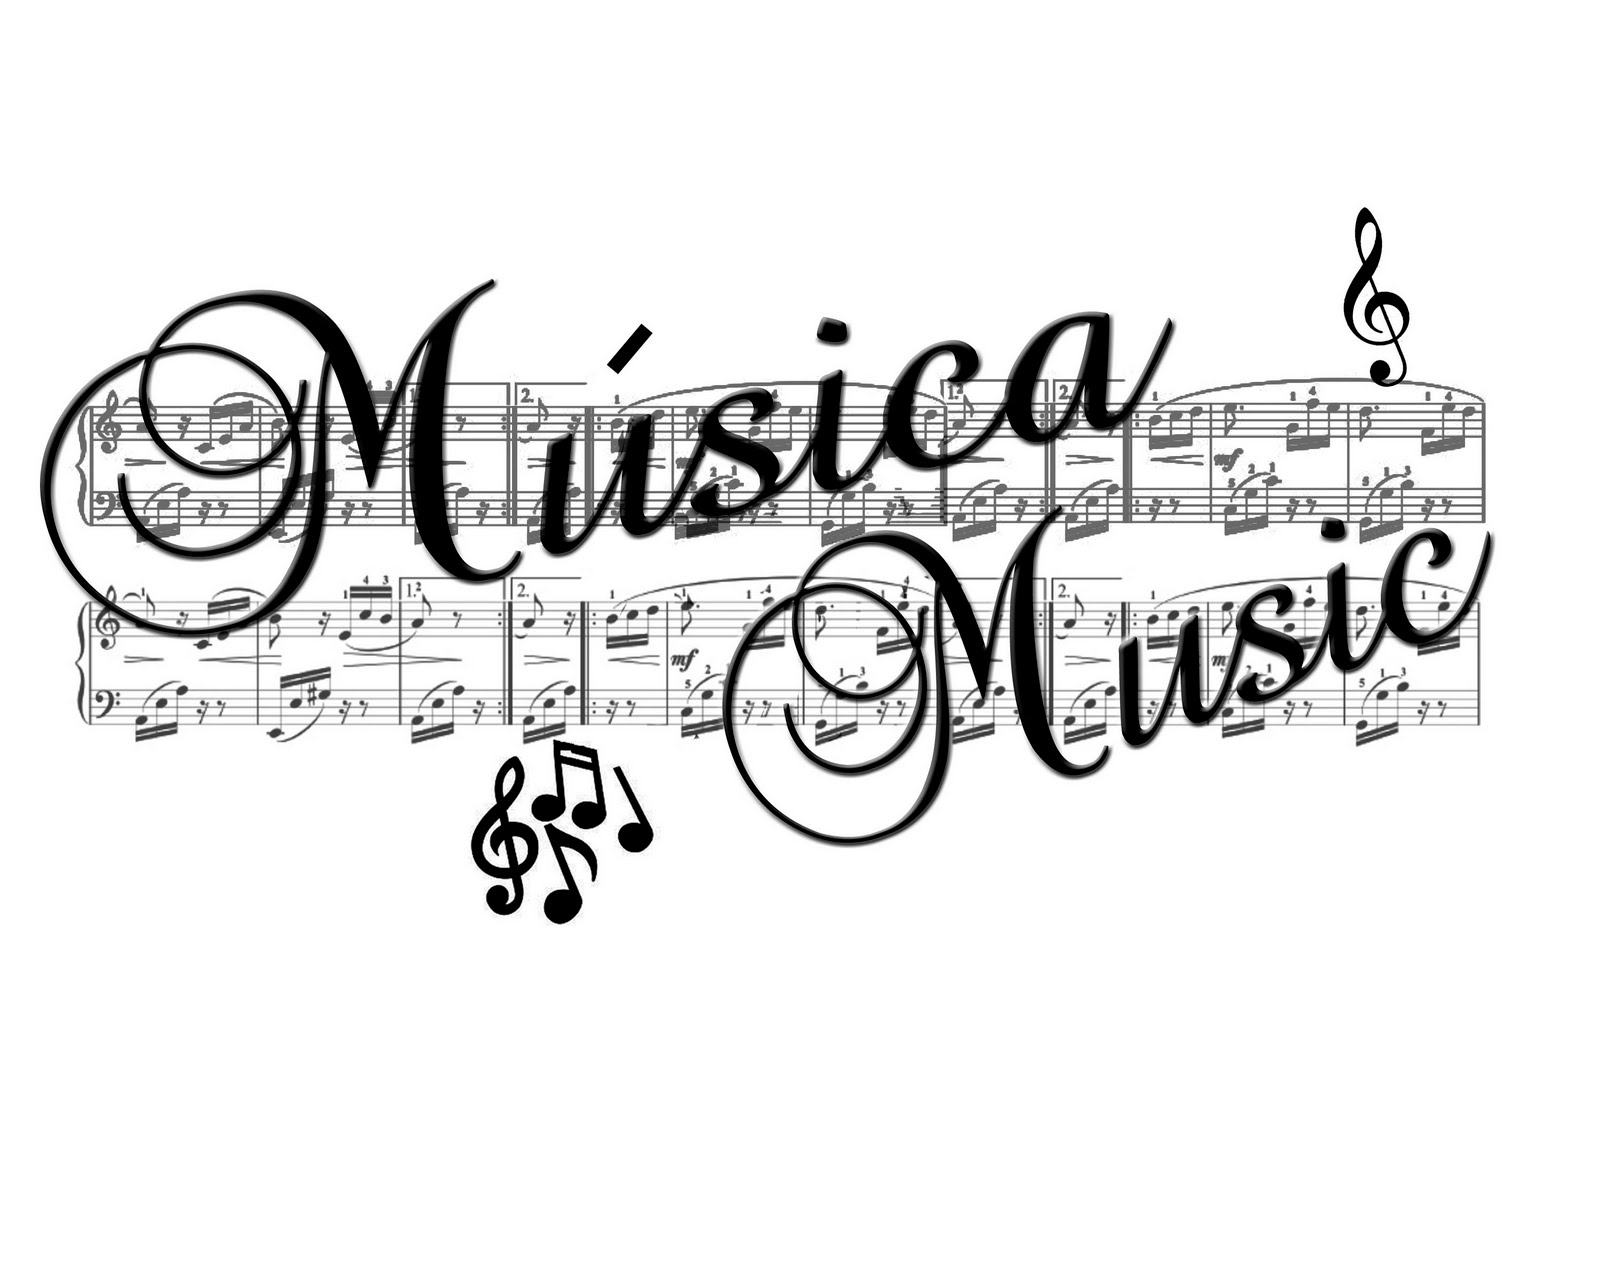 MUSICA - AYUDAS VISUALES /// MUSIC - VISUAL AIDS *****